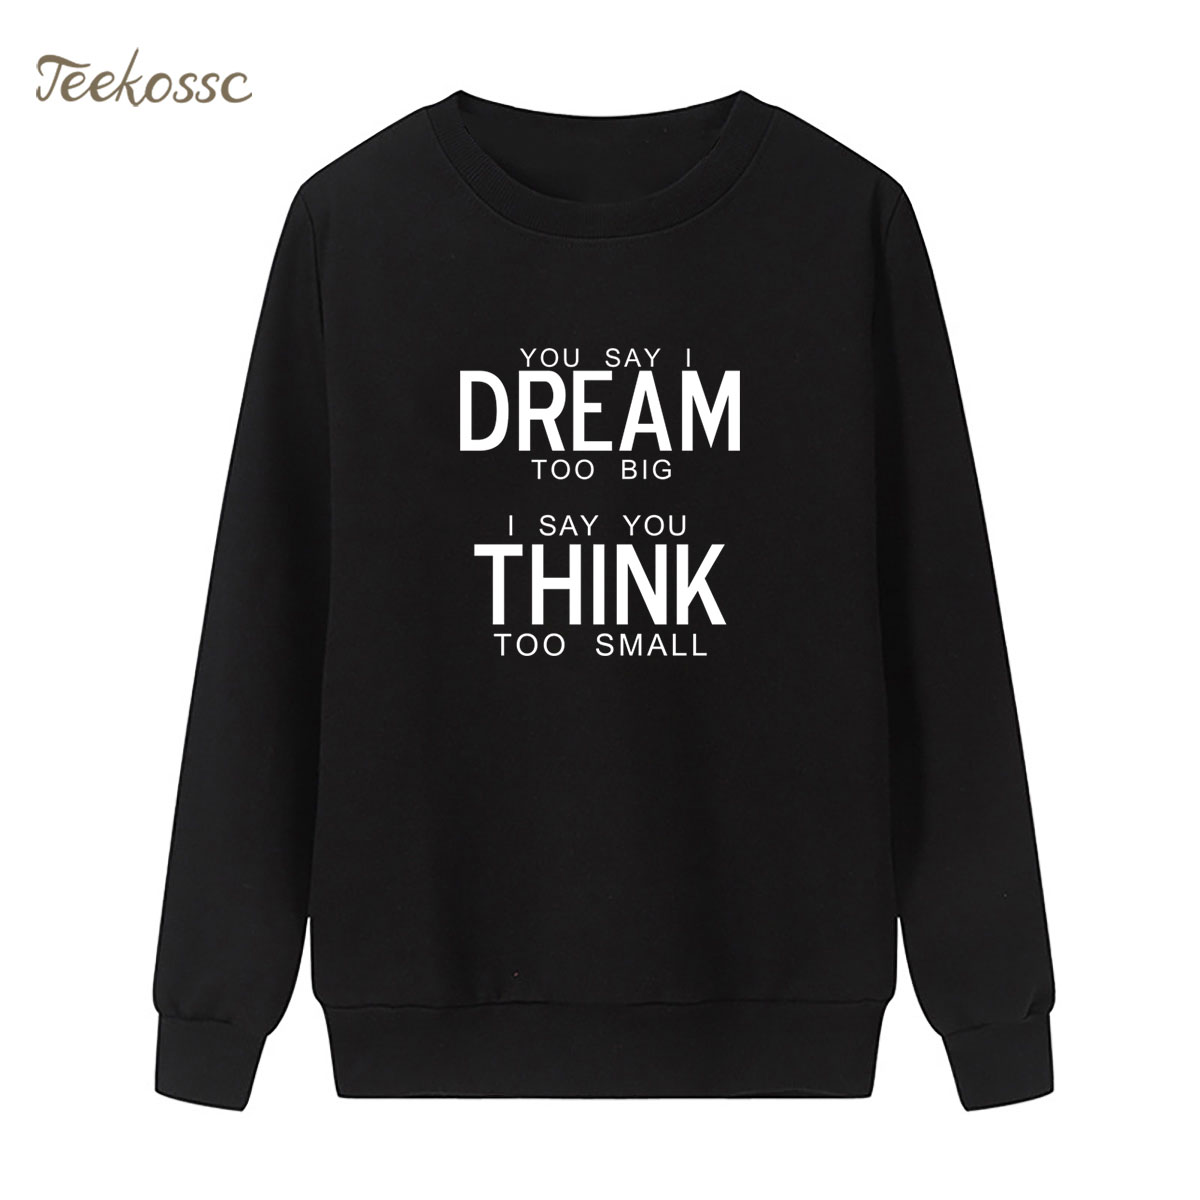 YOU SAY I DREAM TOO BIG I SAY YOU THINK TOO SMALL Sweatshirt Women Print Hoodie Winter Autumn Lasdies Pullover Fleece Streetwear